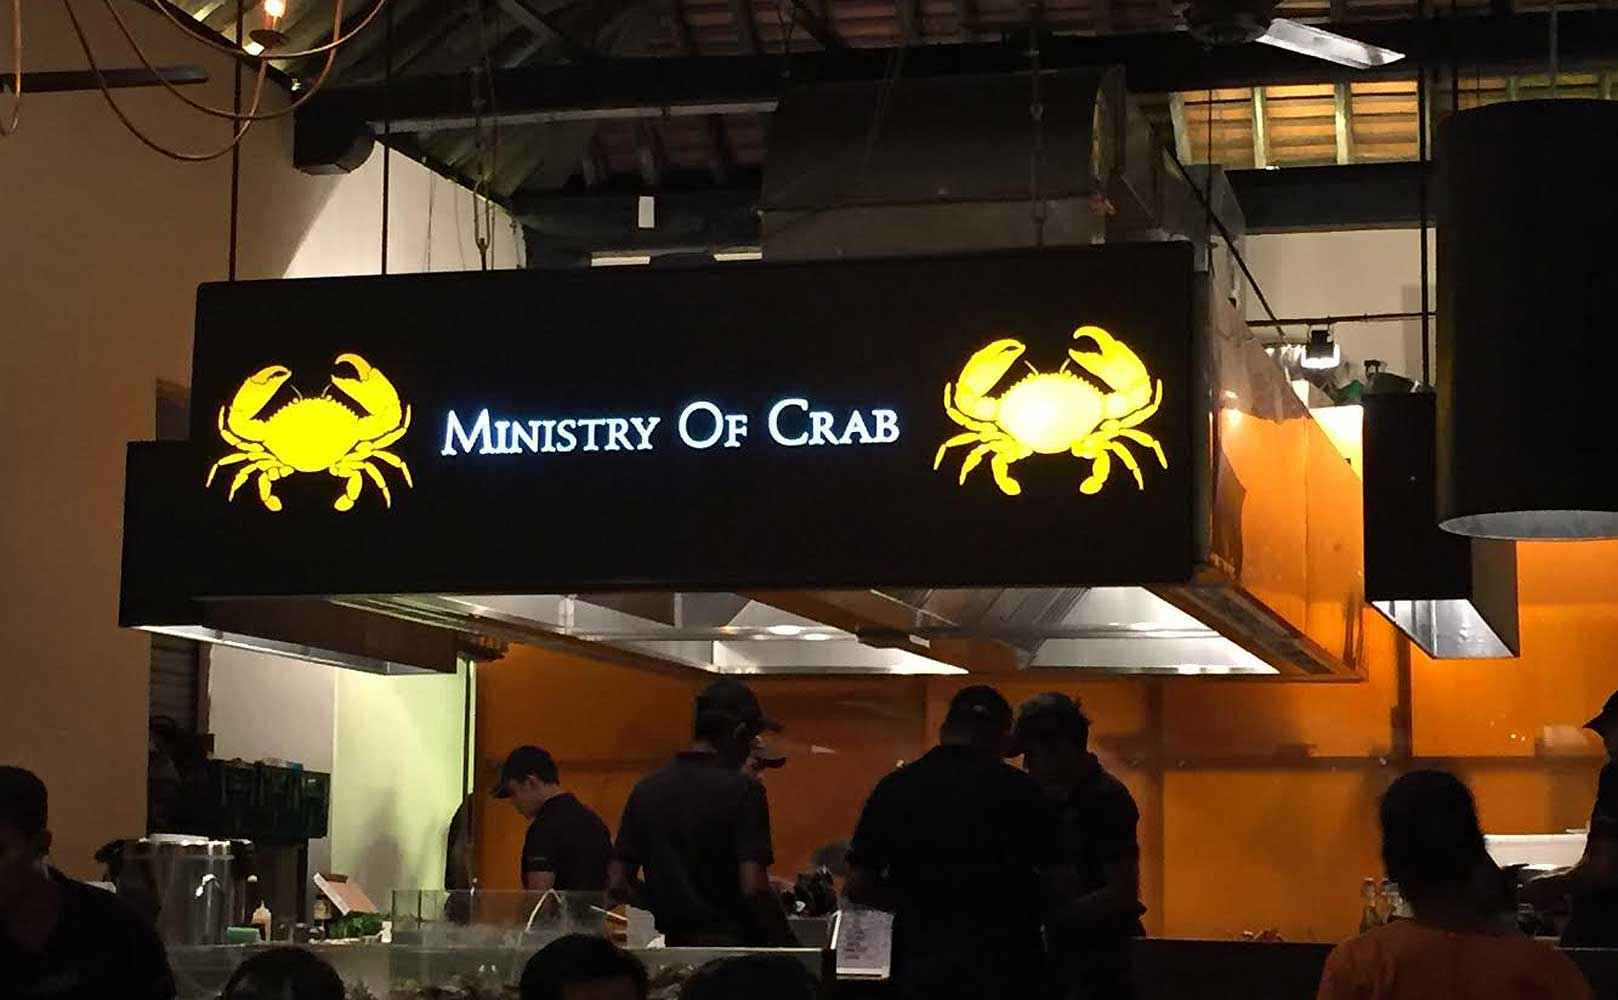 Restaurantkritik: Ministry of Crab in 4, Old Dutch Hospital, Colombo 01, Sri Lanka